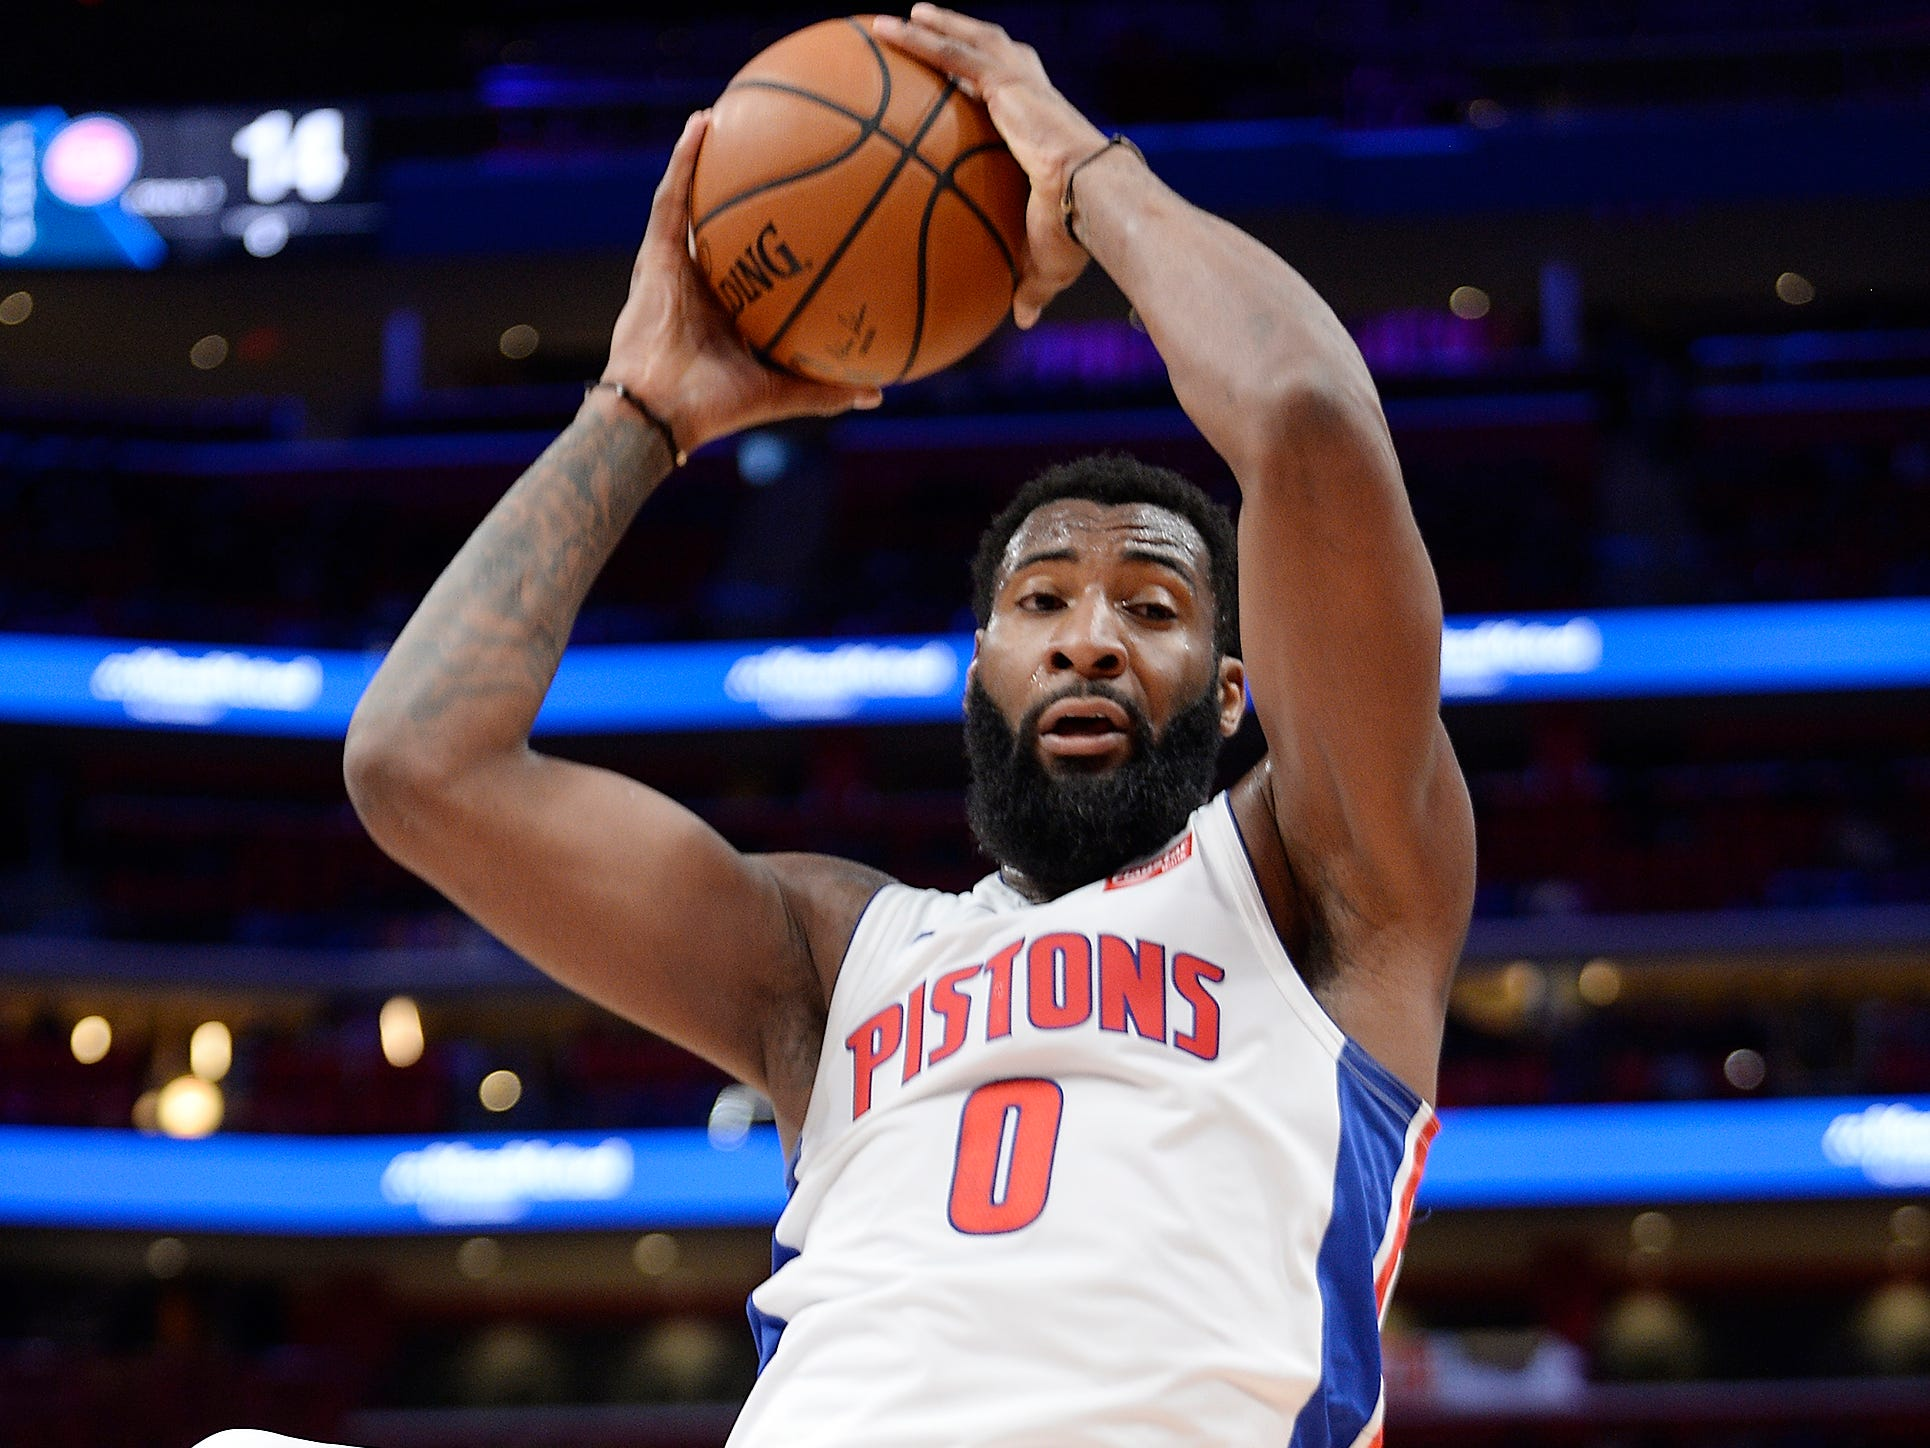 Pistons' Andre Drummond grabs a rebound in the second quarter.